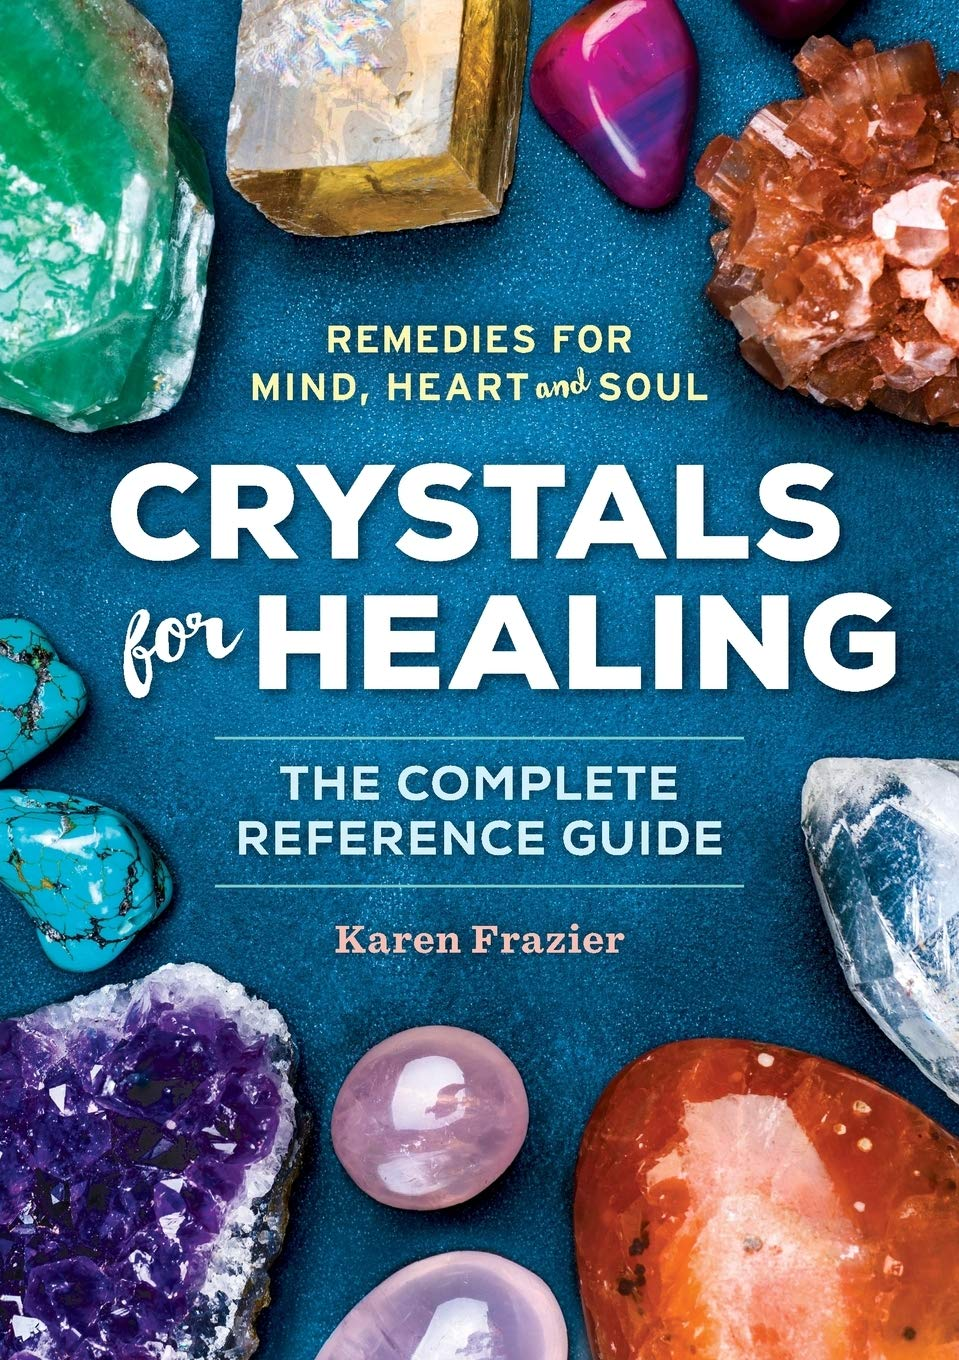 Crystals For Healing The Complete Reference Guide With Over 200 Remedies For Mind Heart Soul Frazier Karen 9781623156756 Amazon Com Books